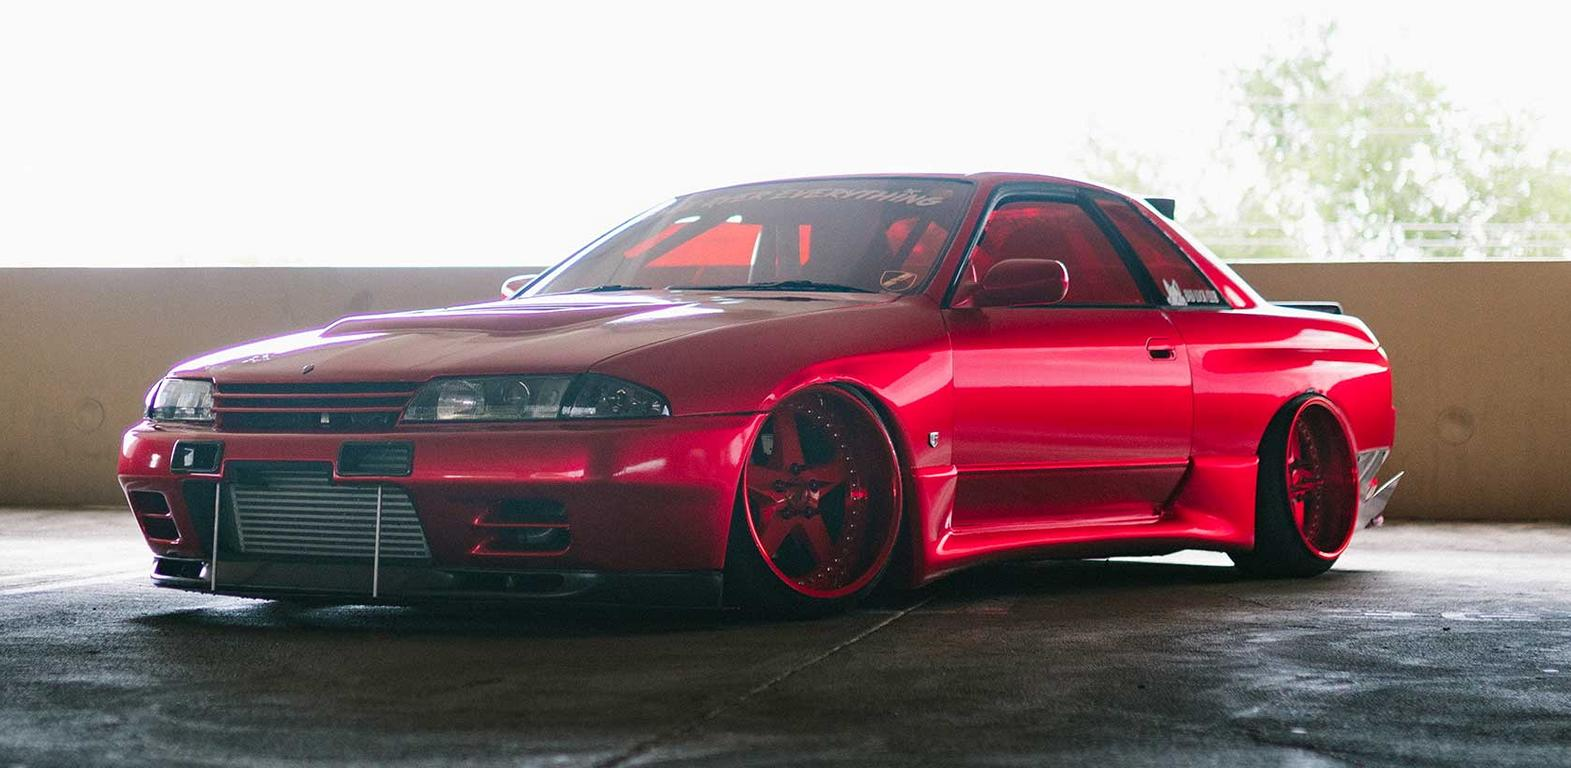 Nissan Skyline Gt R R32 With 800 Ps And All Wheel Drive Godzilla S Great Grandfather With Bear Powers